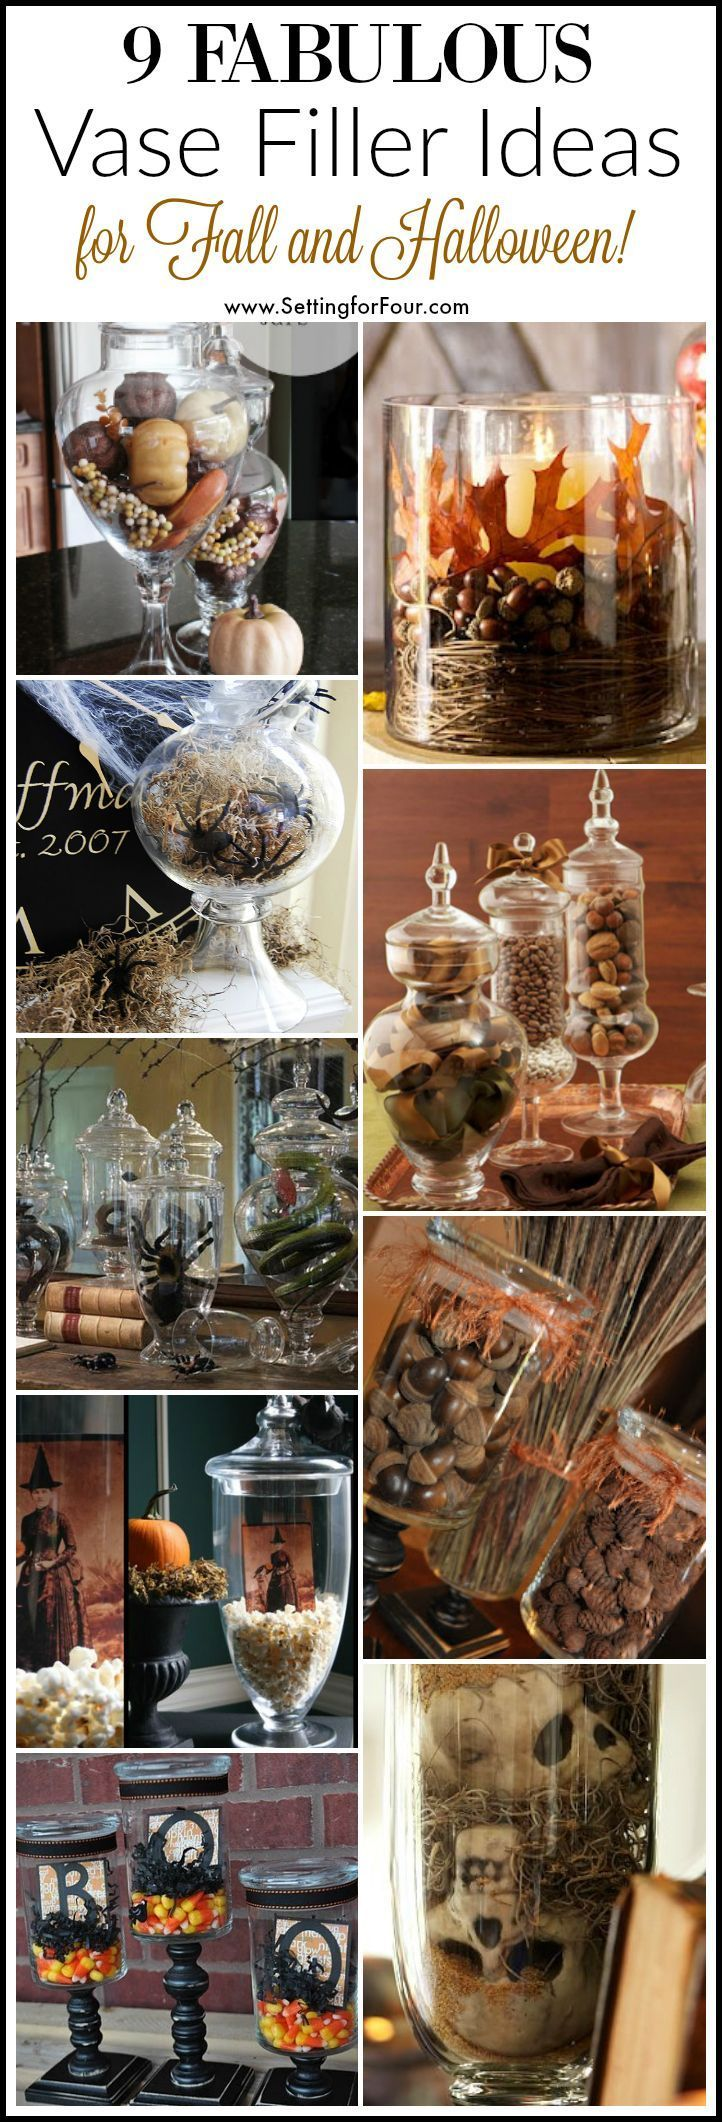 It's fun to decorate your vases and apothecary jars for the seasons and… #apothecarydecoratingbathrooms